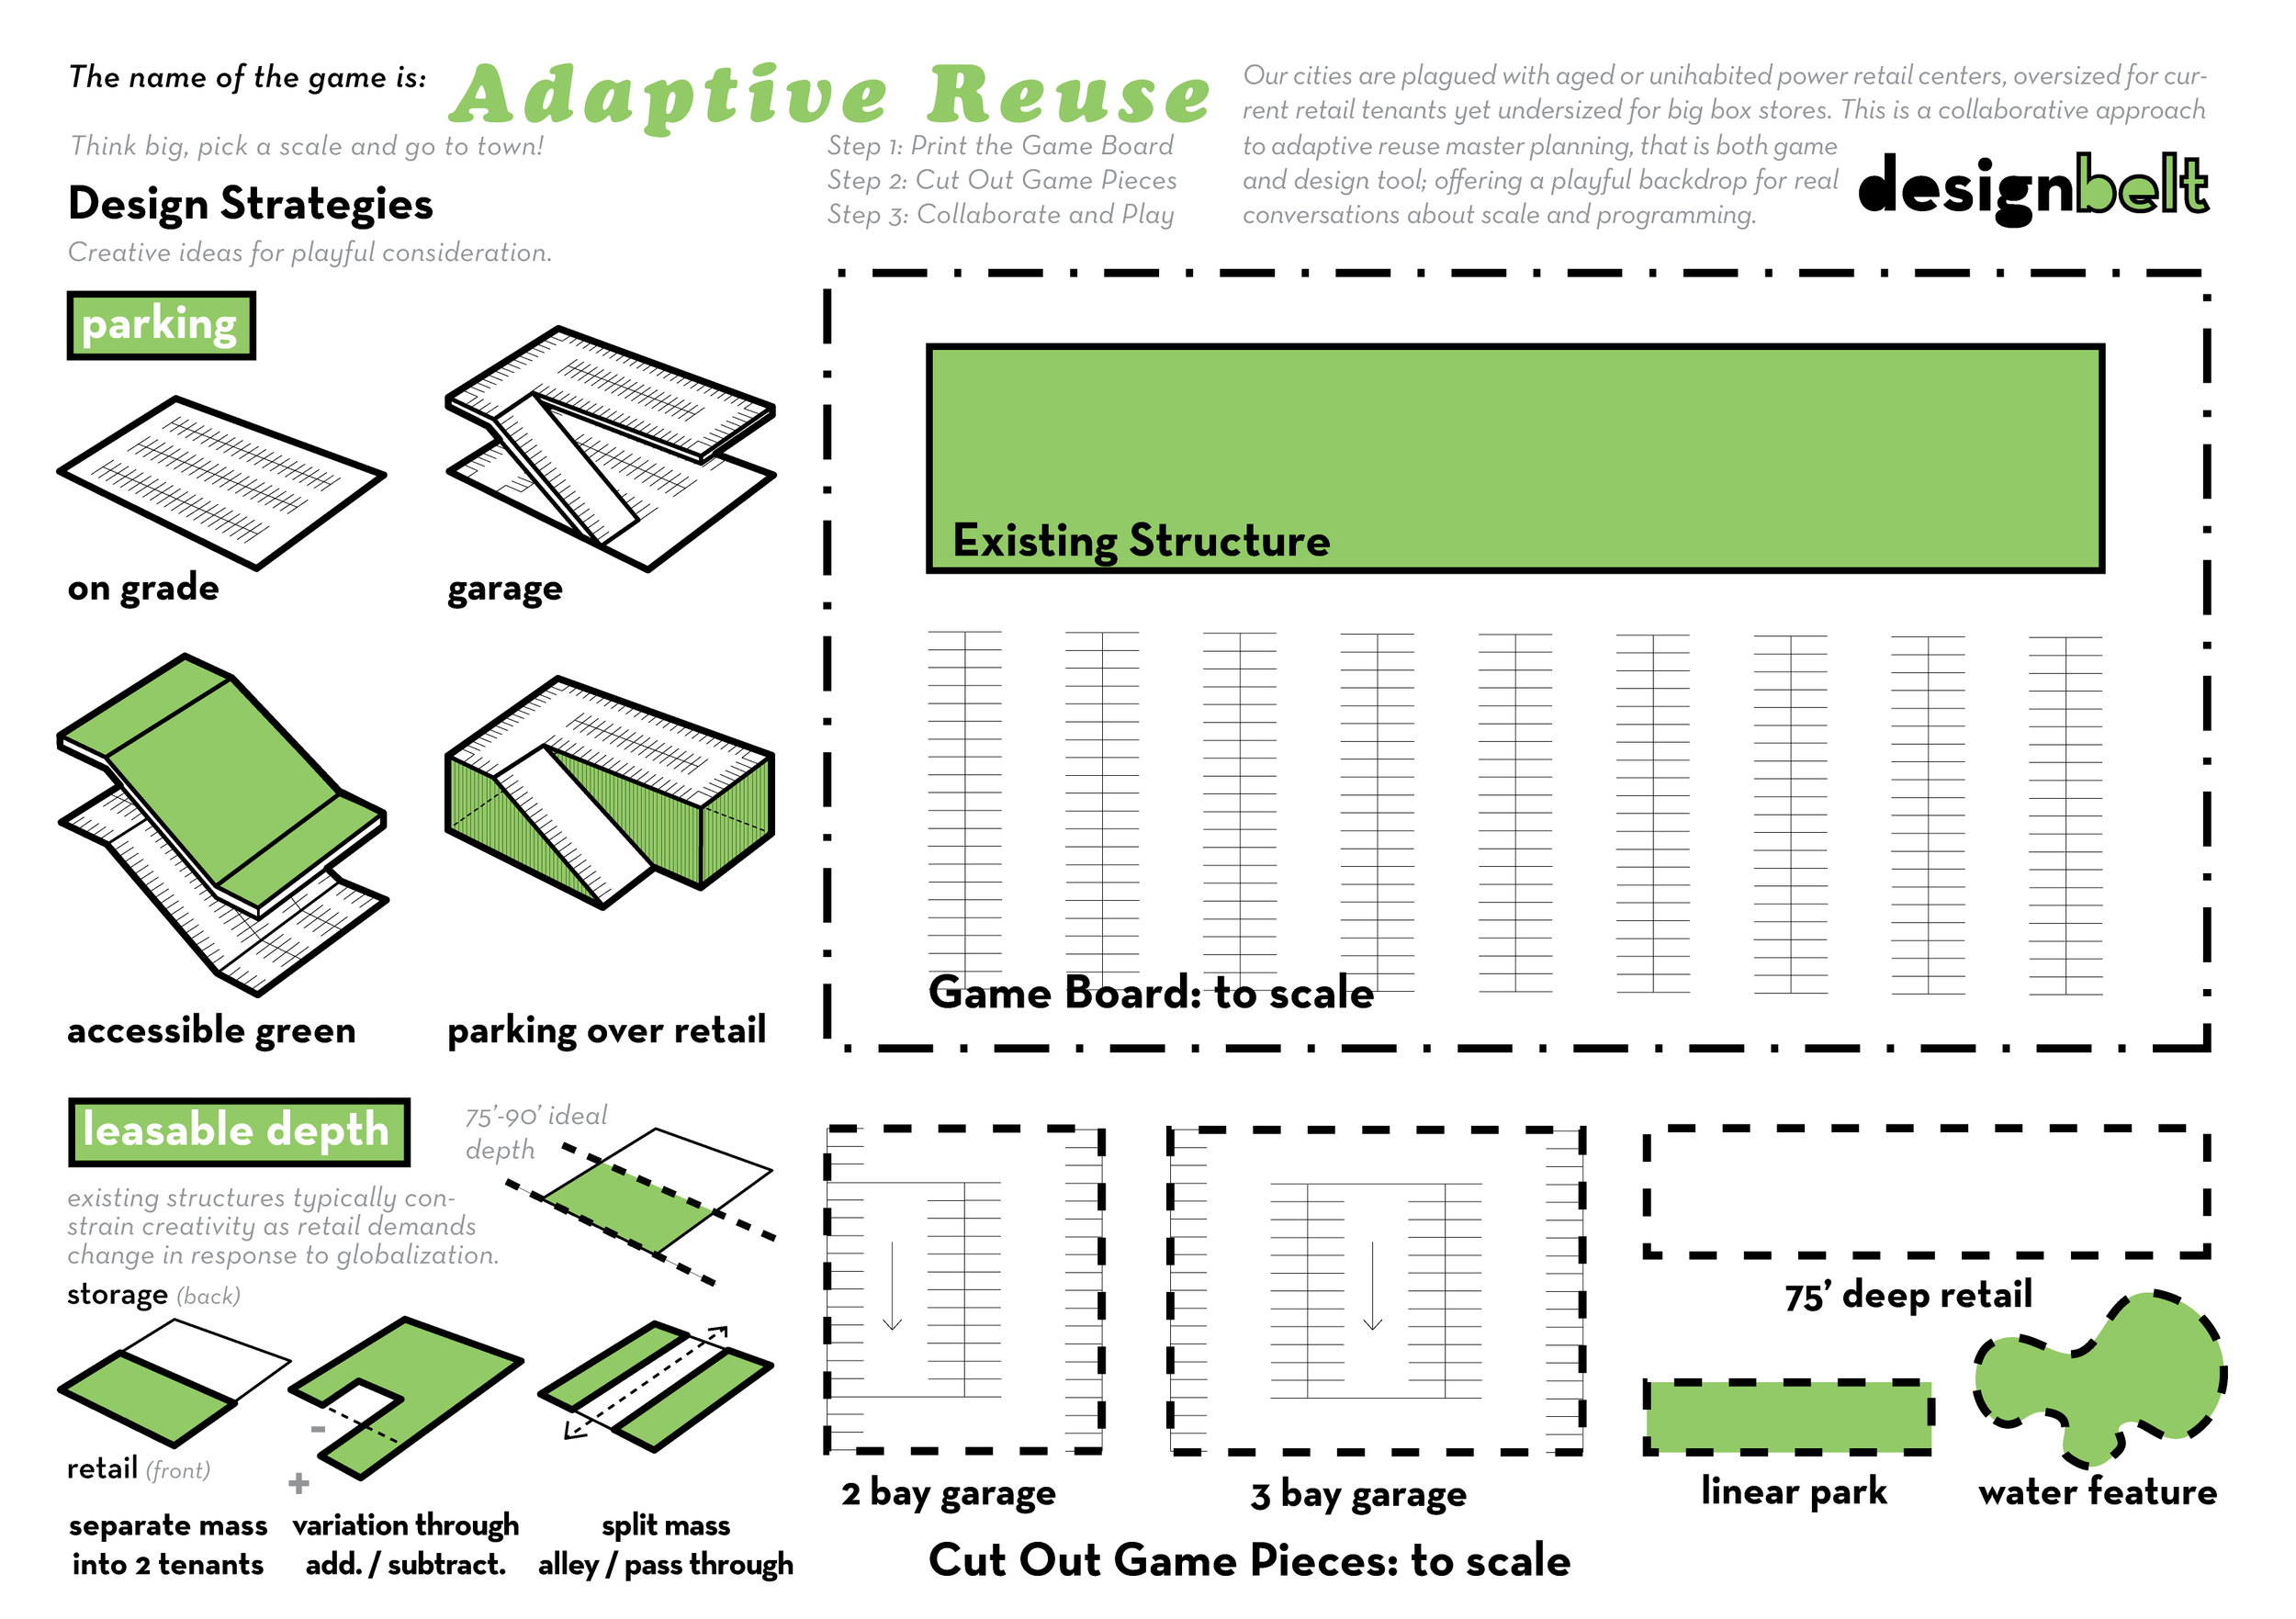 designbelt-adaptivereuse-overview.jpg